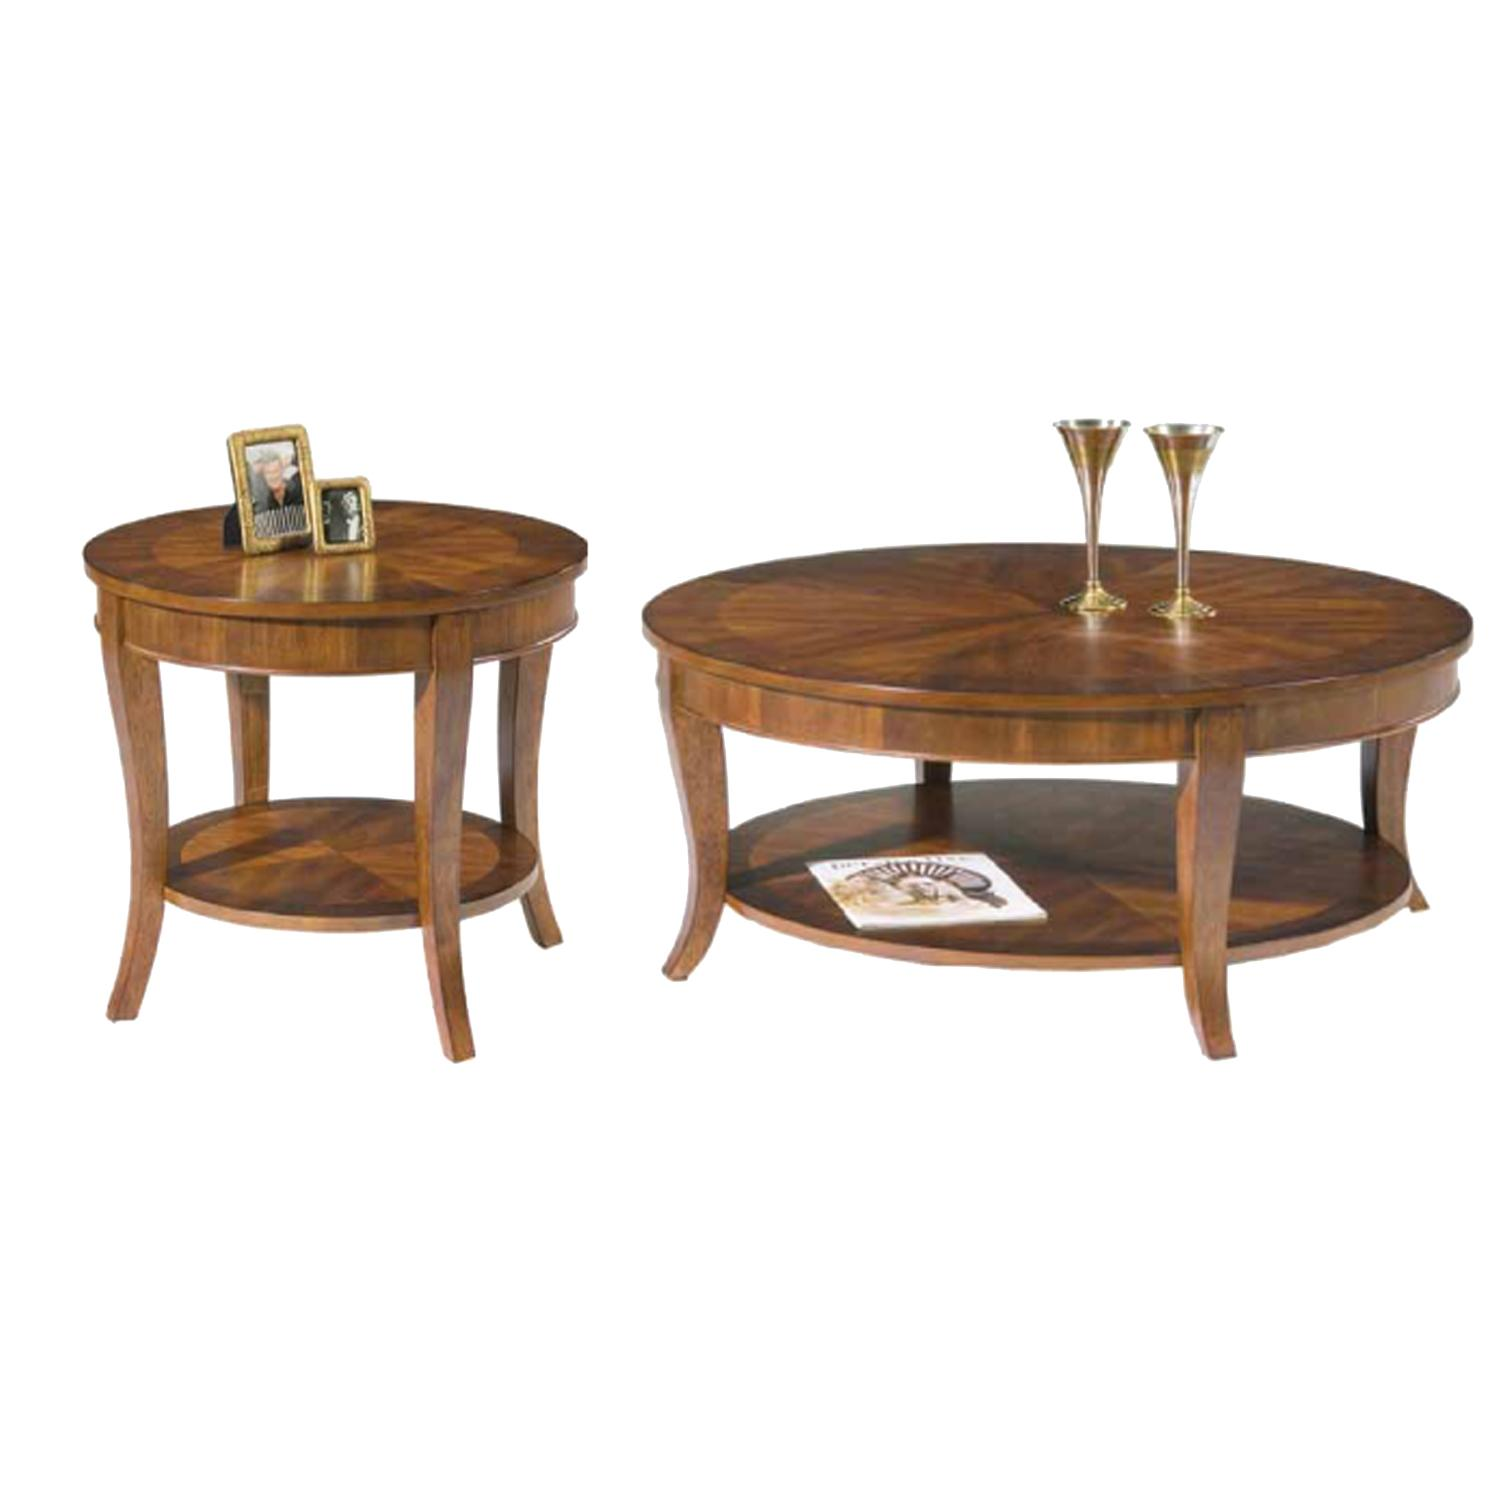 Liberty Furniture Bradshaw 3 Piece Occasional Table Set - Item Number: 748-OT1010-2x20